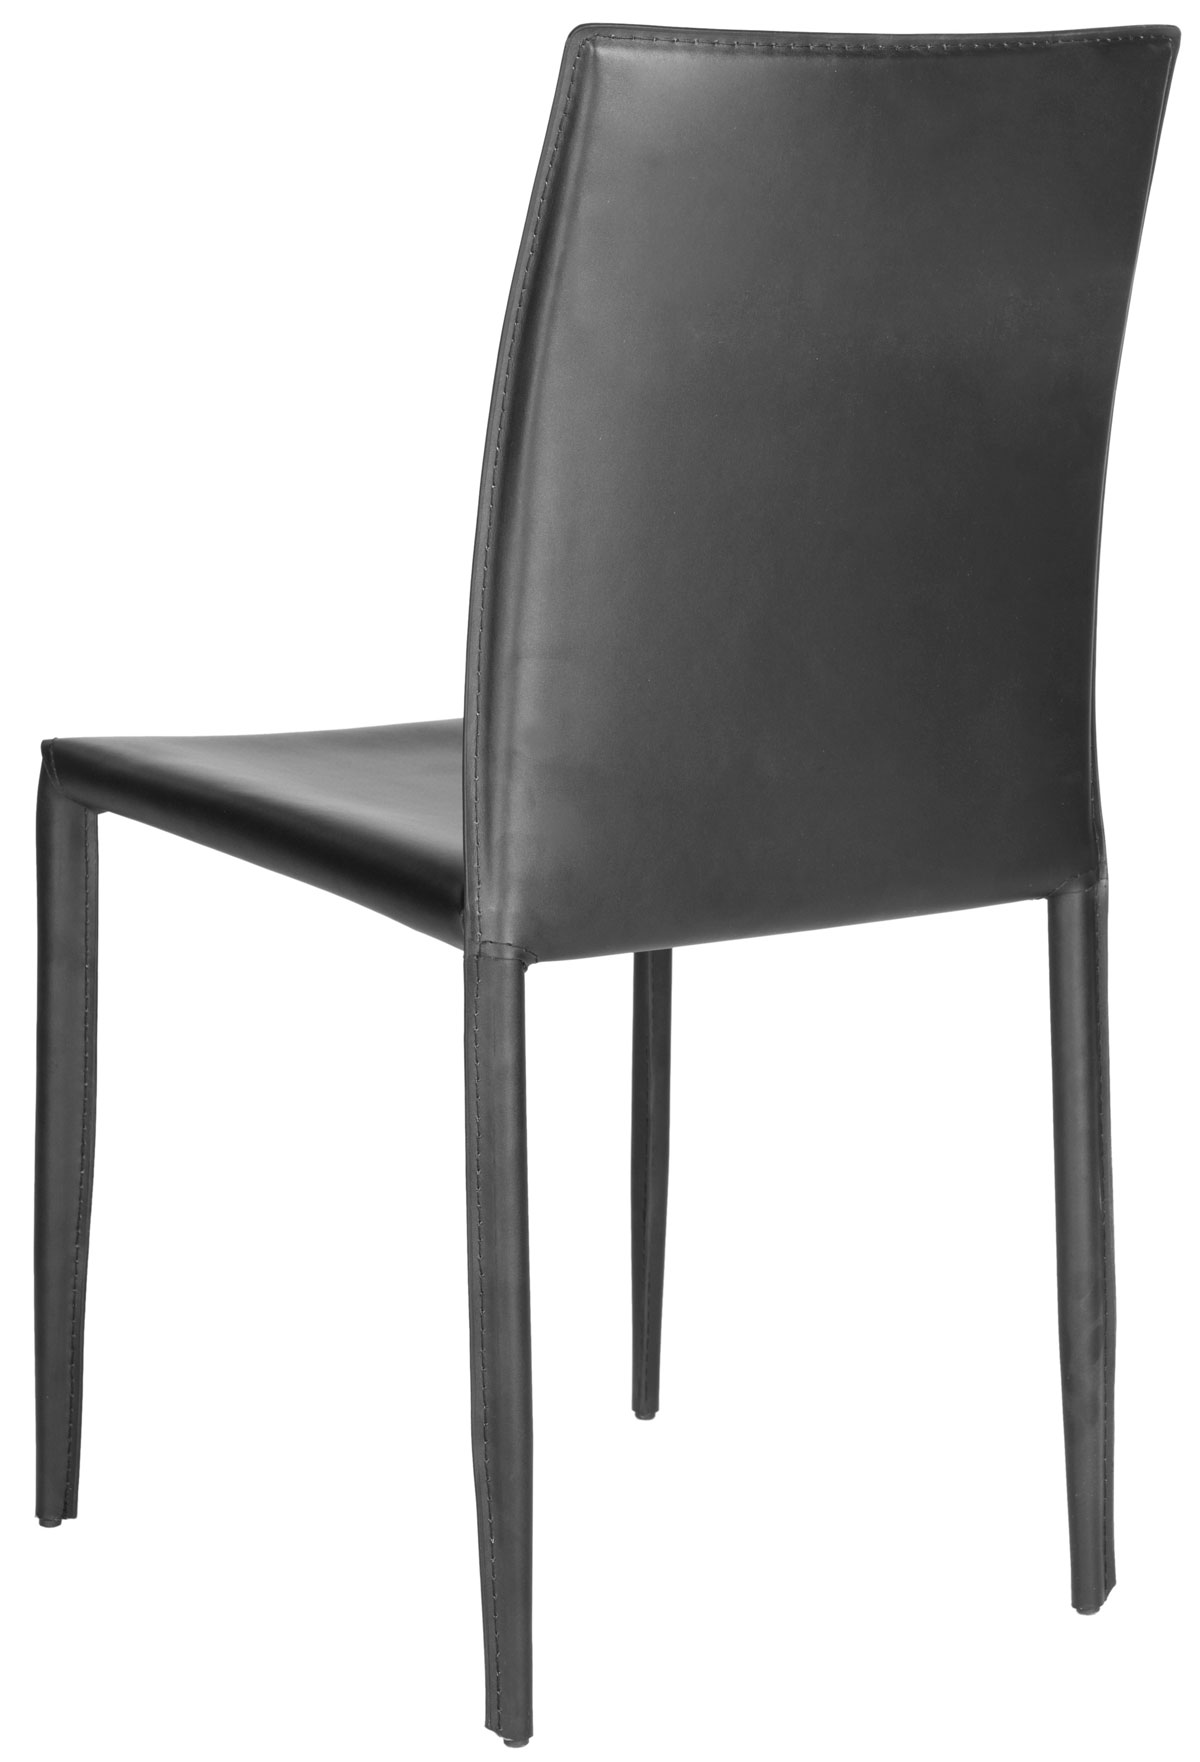 safavieh karna dining chair captains gym exercises fox2009k set2 chairs furniture by